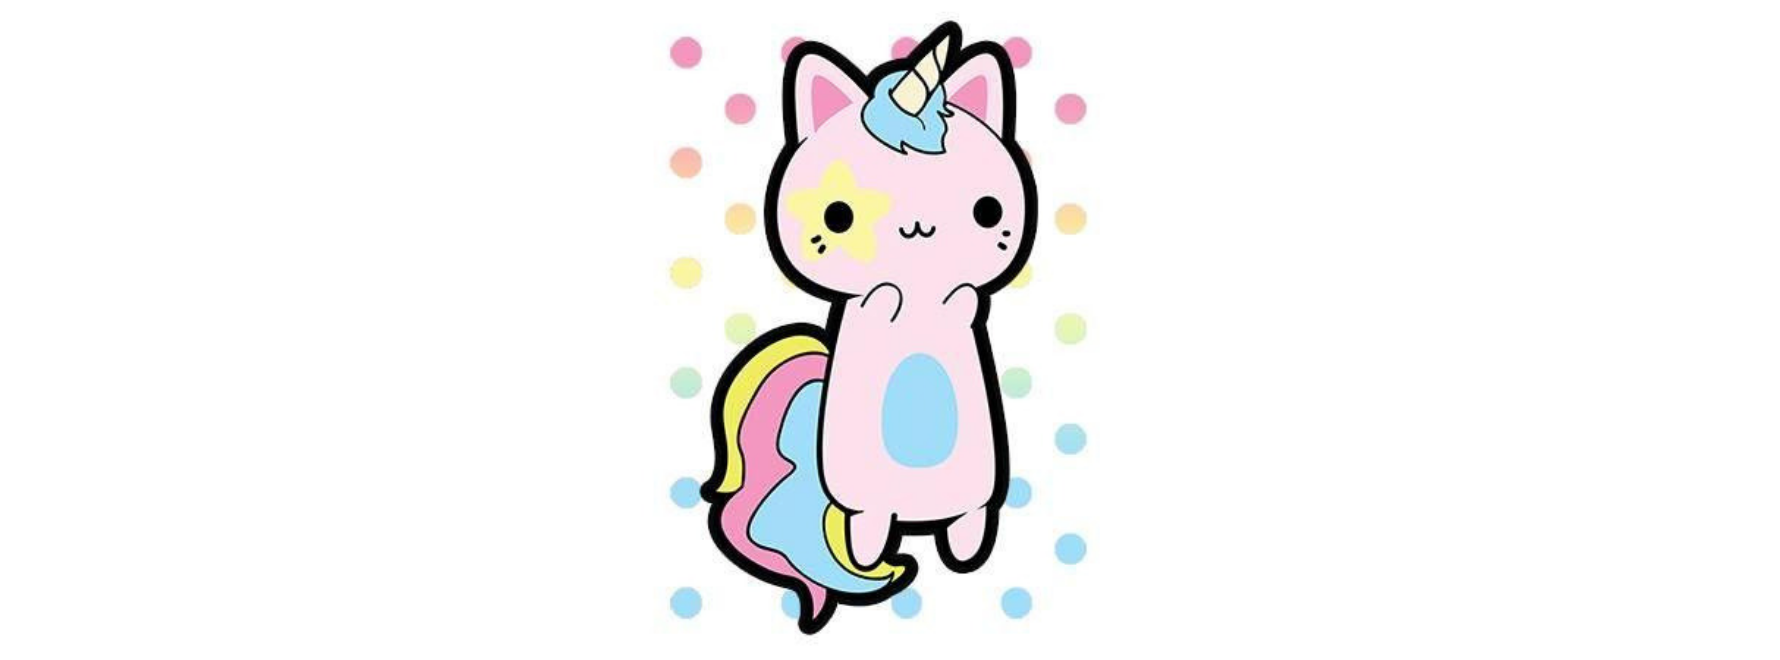 unicat_licorne_chat_hello_kitty